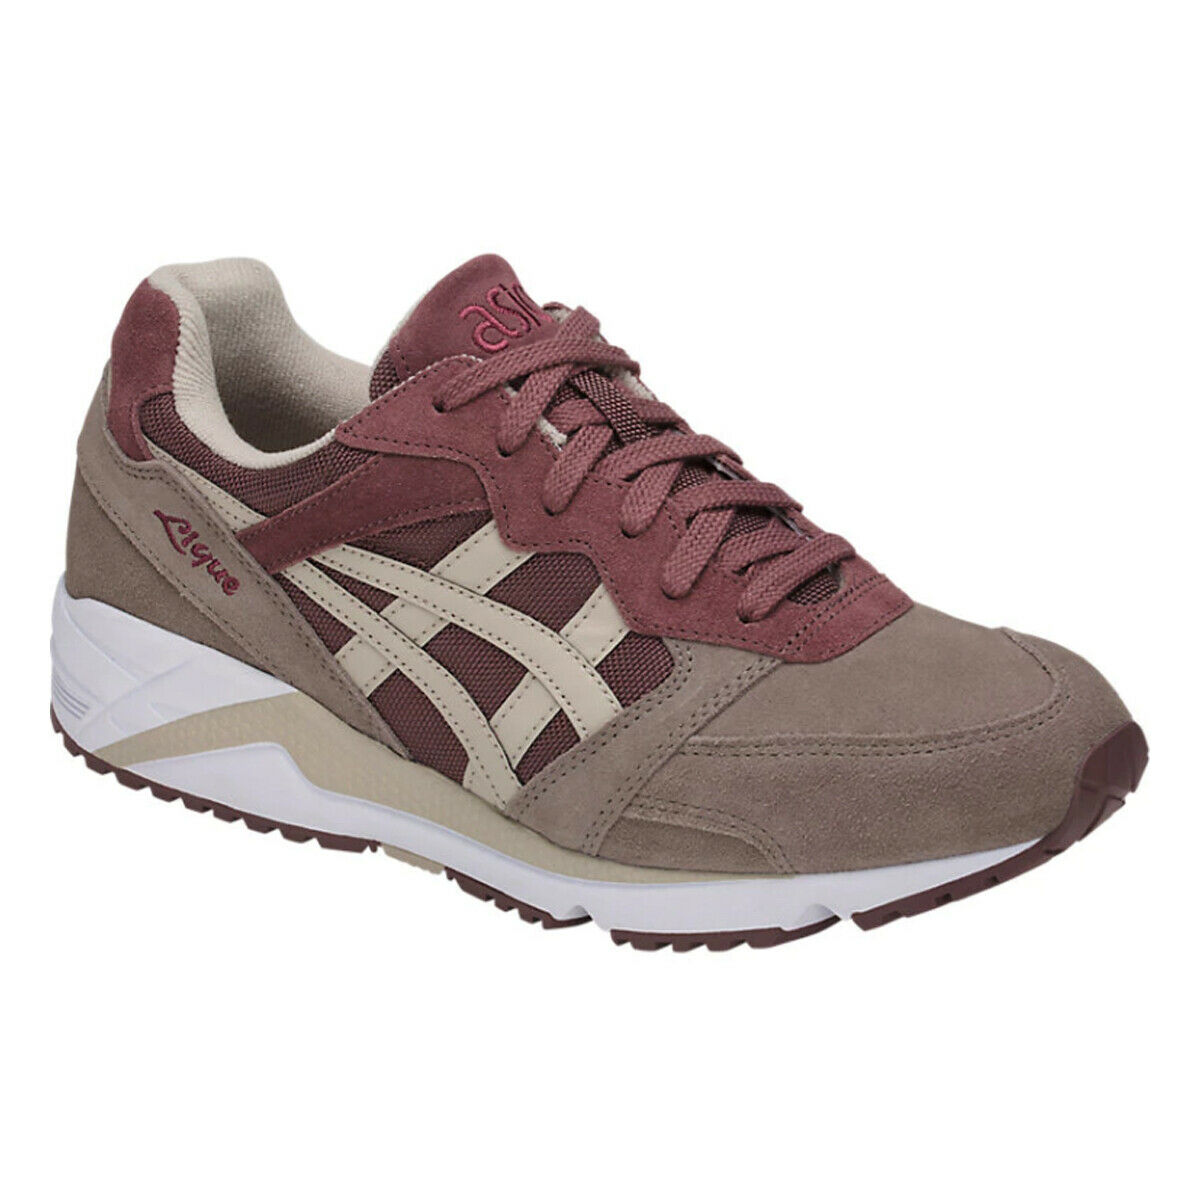 Asics Gel-Lique Men's pink Taupe Feather Grey Sneaker shoes H838L-2612